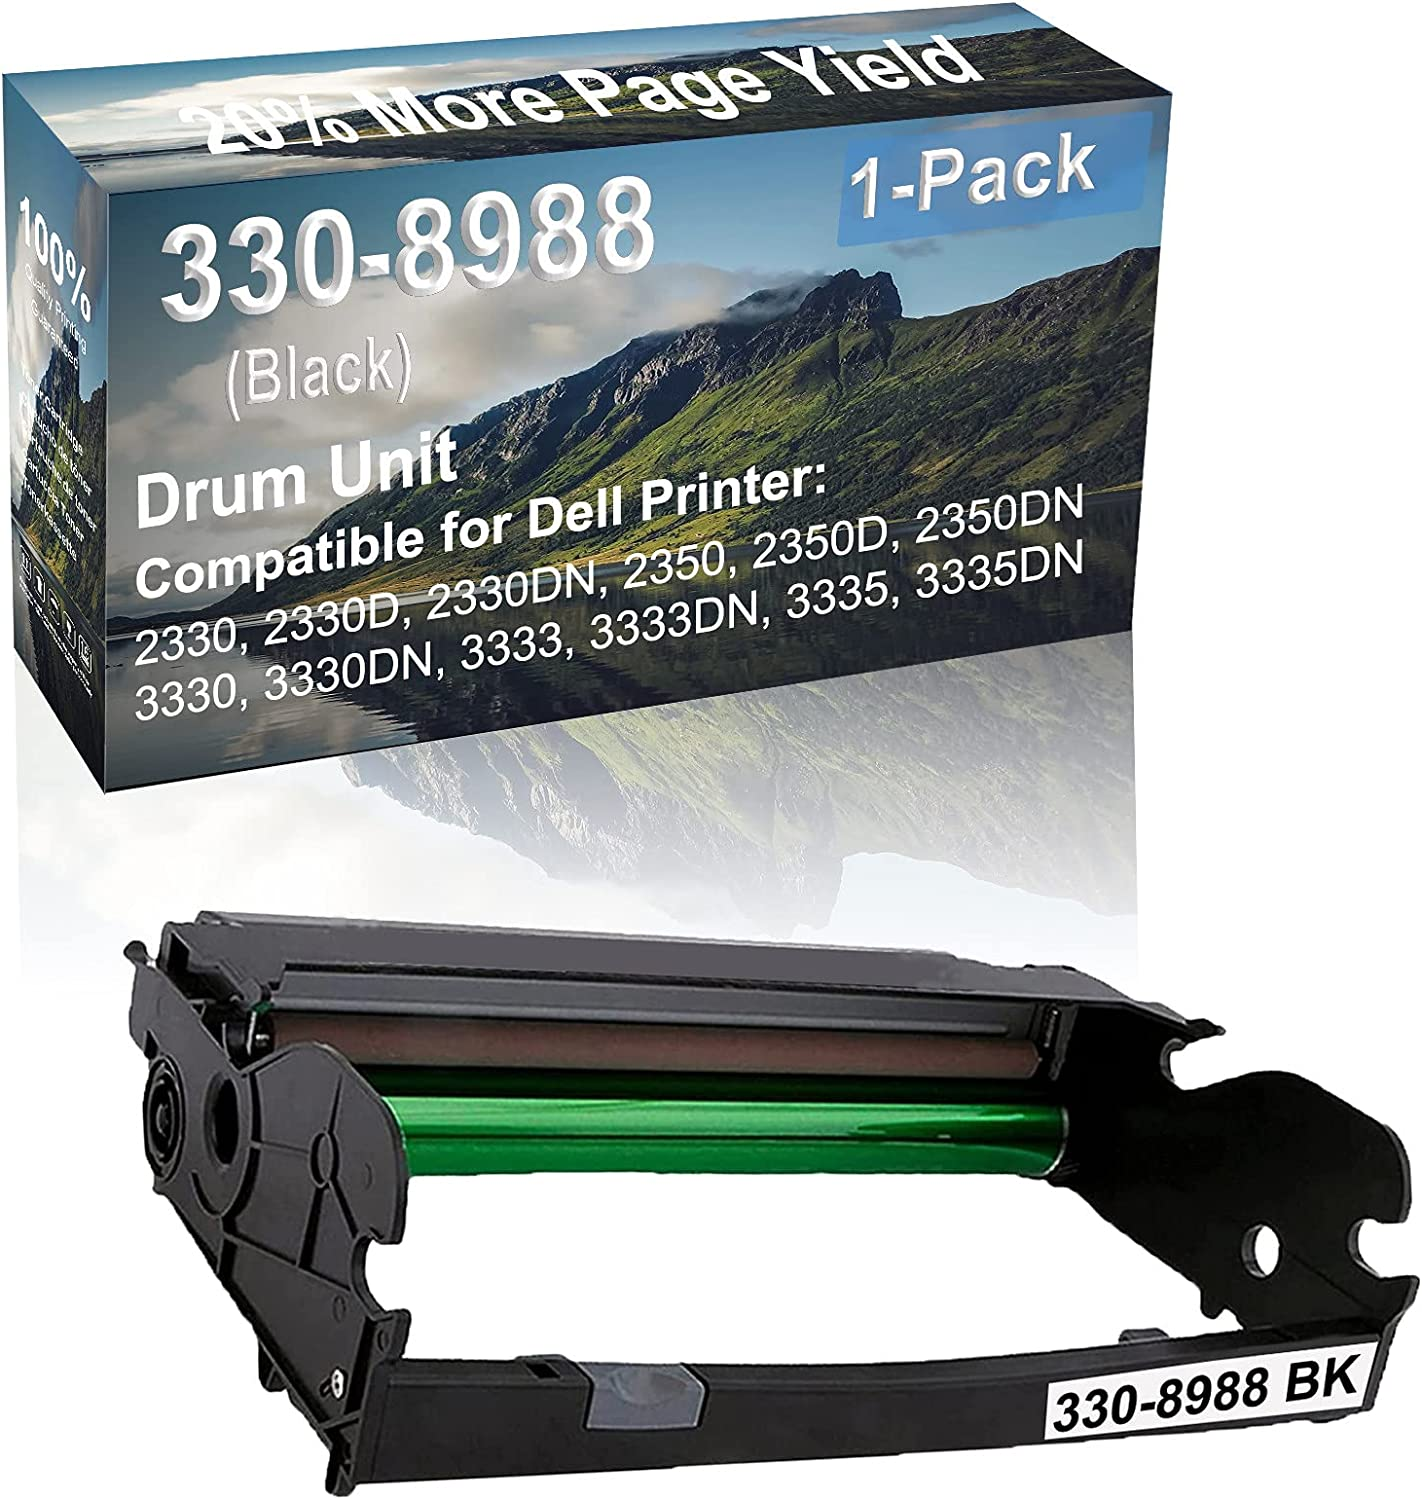 1-Pack Compatible 330-8988 Drum Kit use for Dell 2330, 2330D, 2330DN, 2350 Printer (Black)